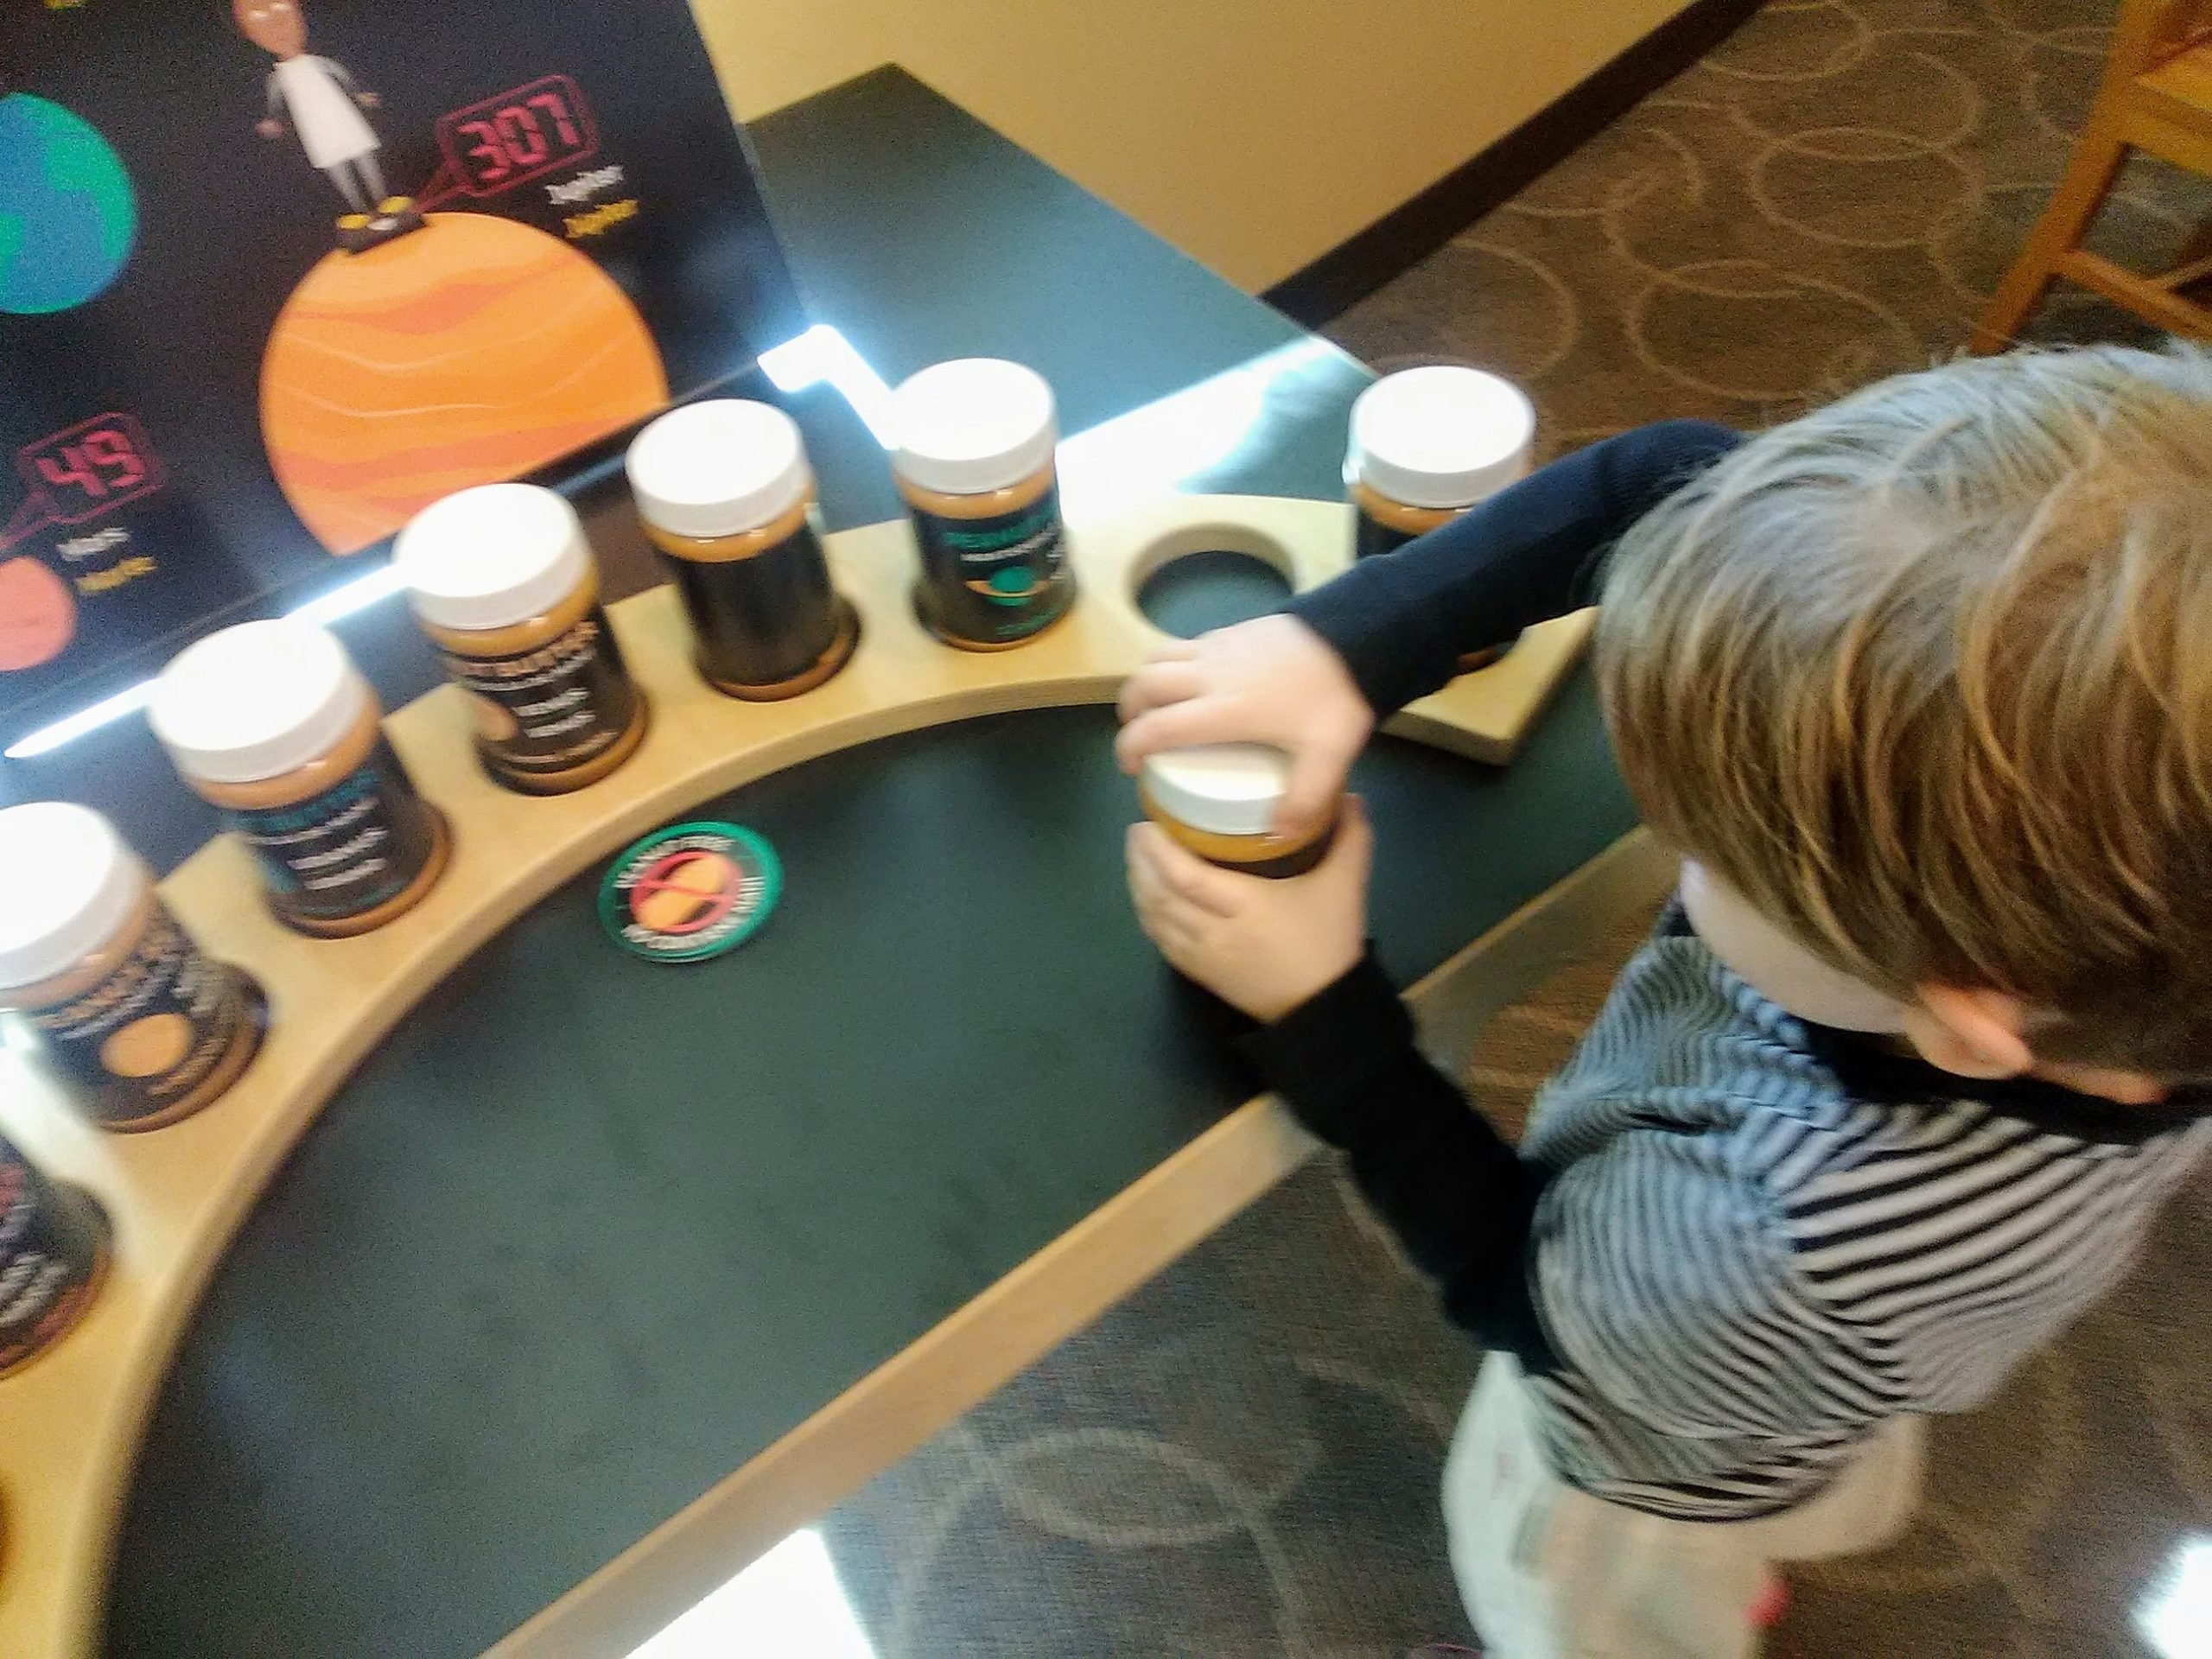 More science at the library